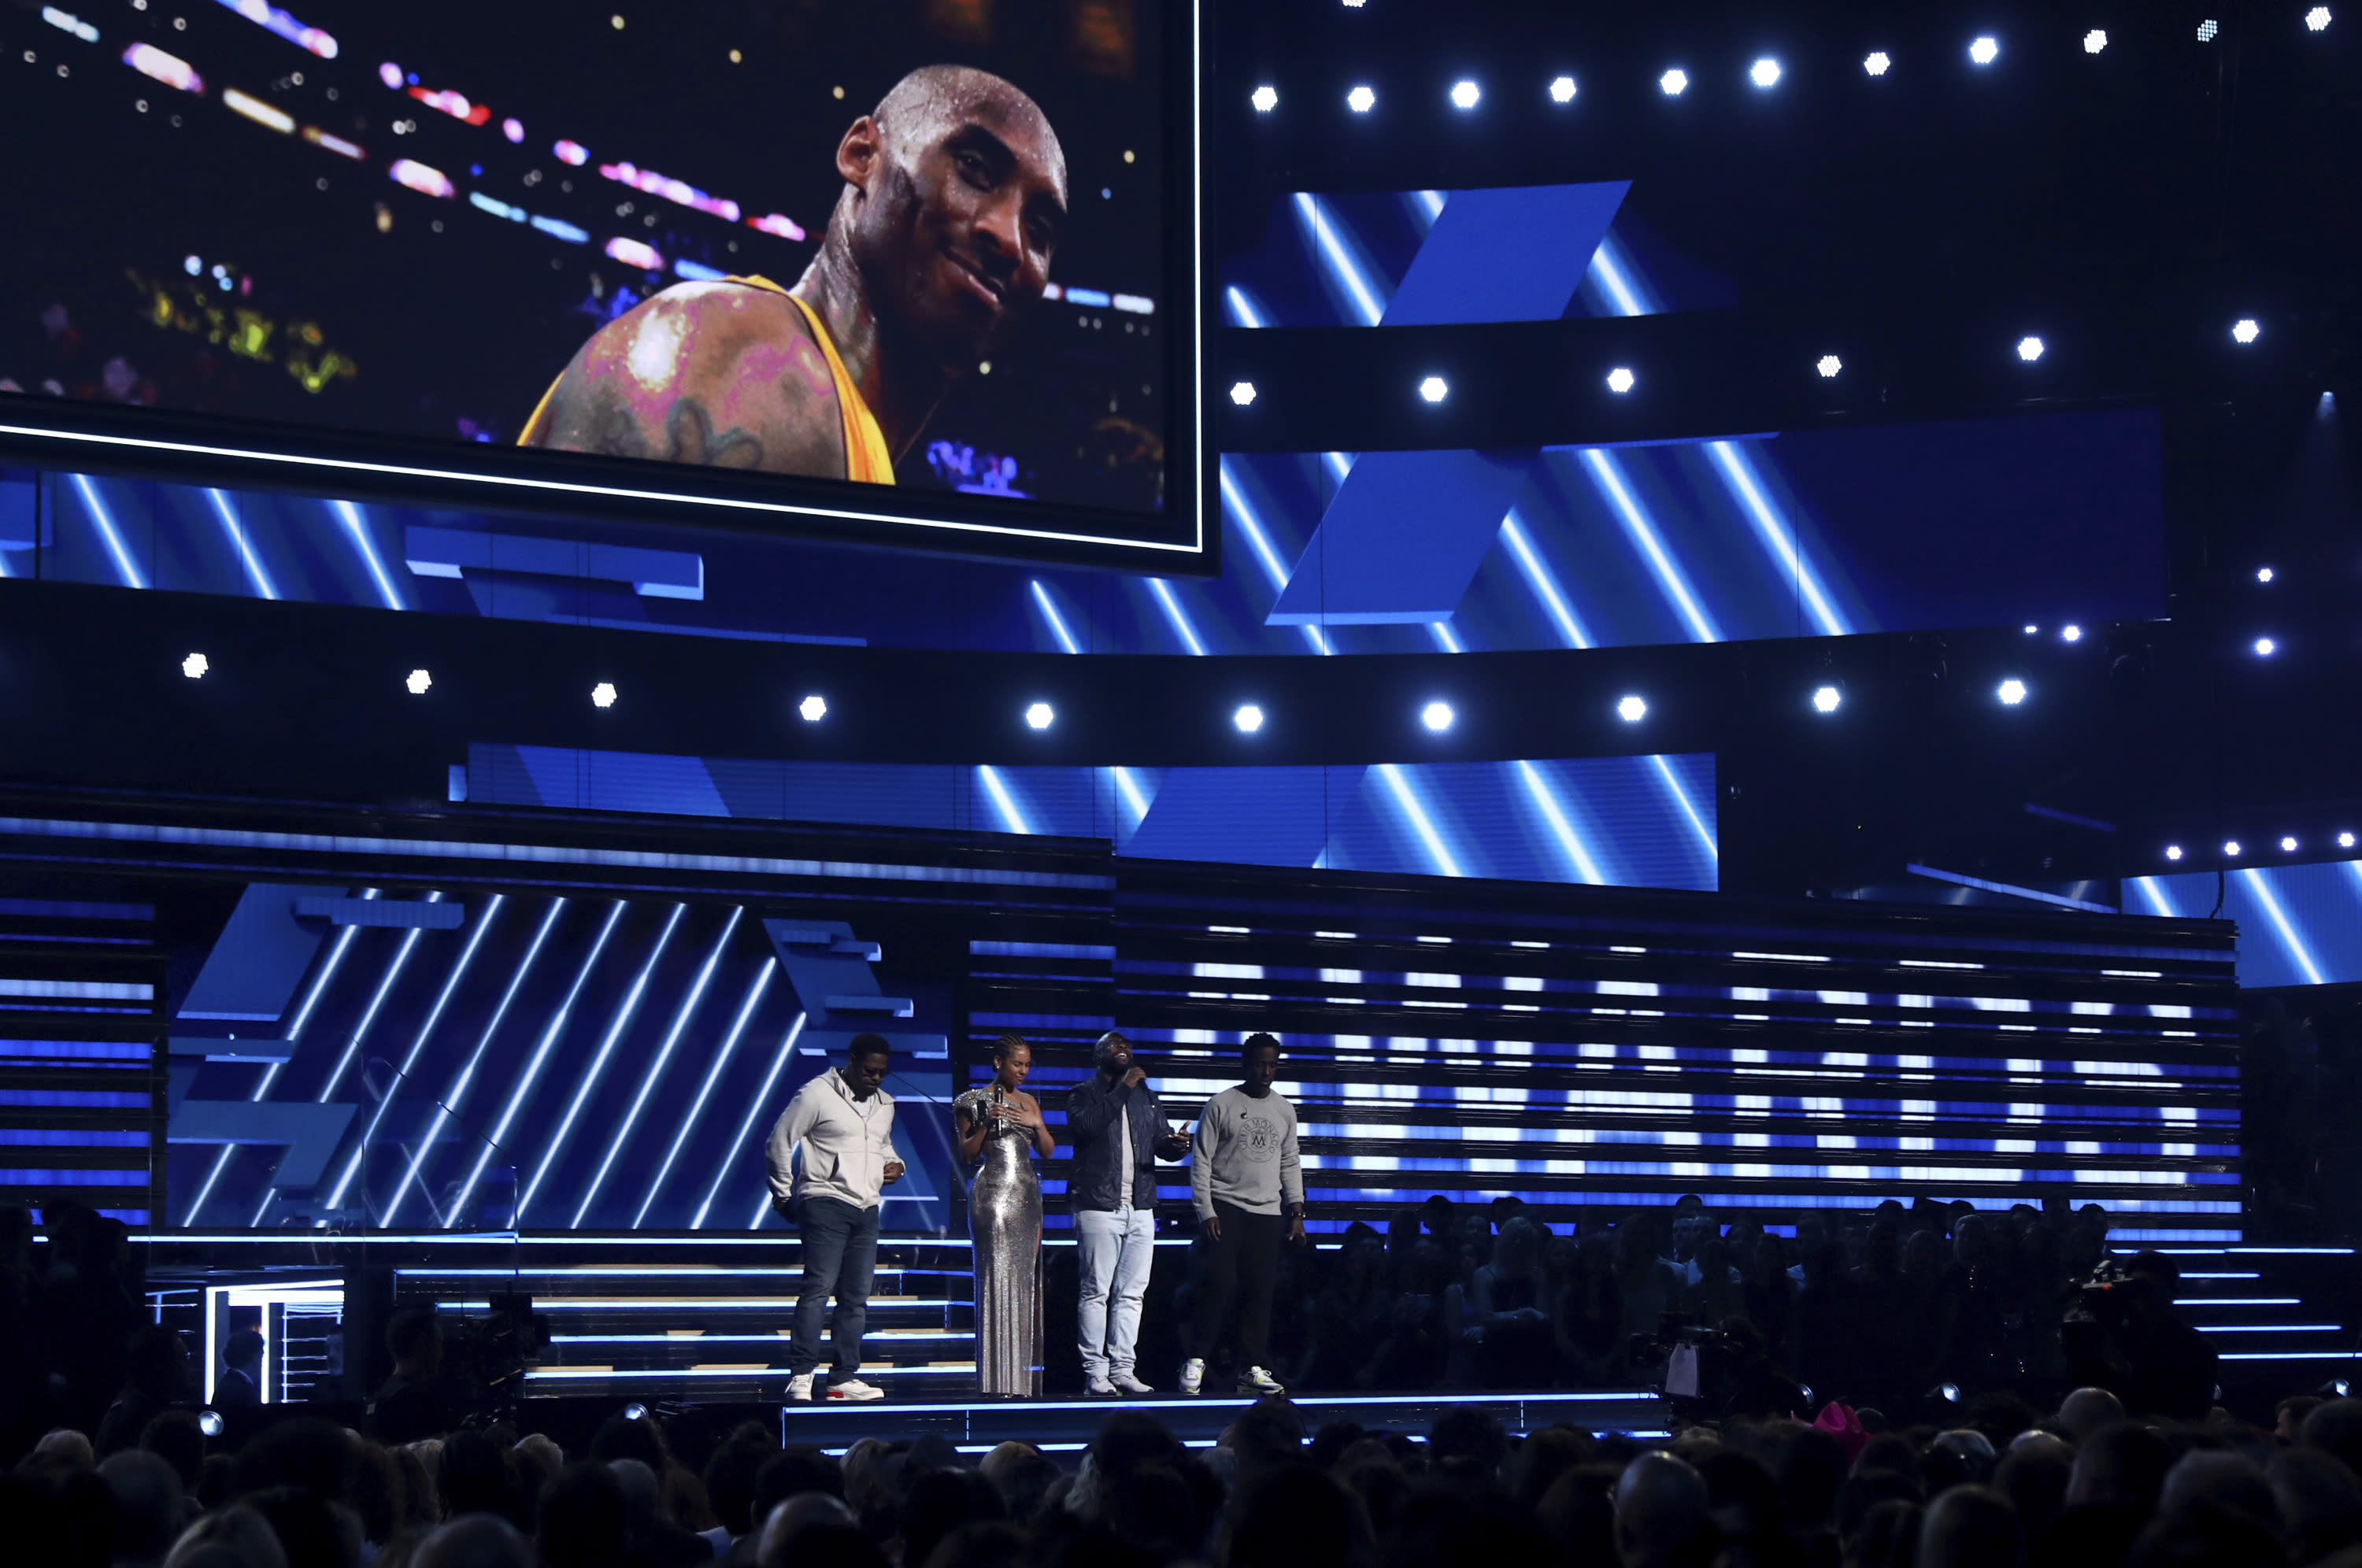 Nathan Morris, from left, Wanya Morris, Shawn Stockman, of Boyz II Men‎, and Alicia Keys, second left, sing a tribute in honor of the late Kobe Bryant, seen on screen, at the 62nd annual Grammy Awards on Sunday, Jan. 26, 2020, in Los Angeles. (Photo: Matt Sayles/Invision/AP)